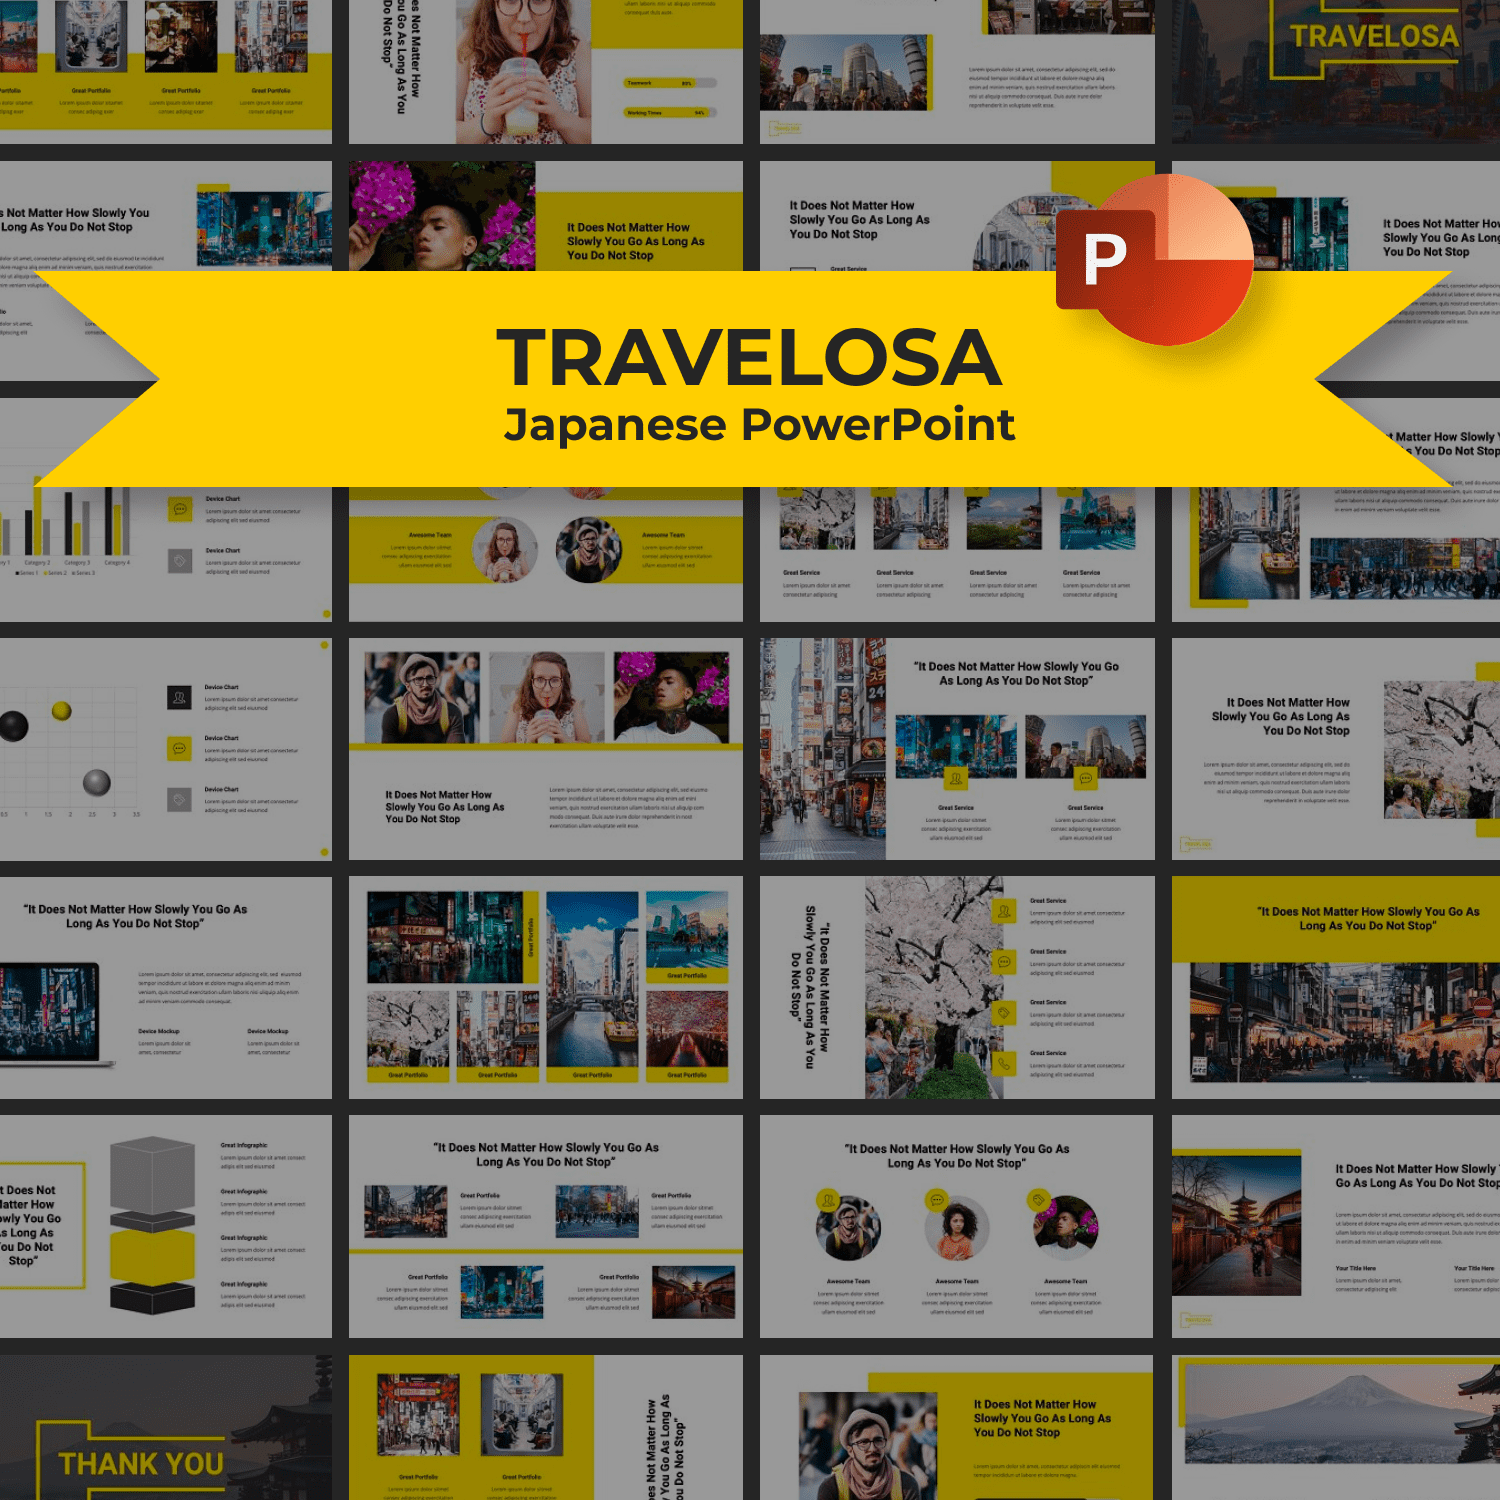 Travelosa Japanese PowerPoint Template main cover.